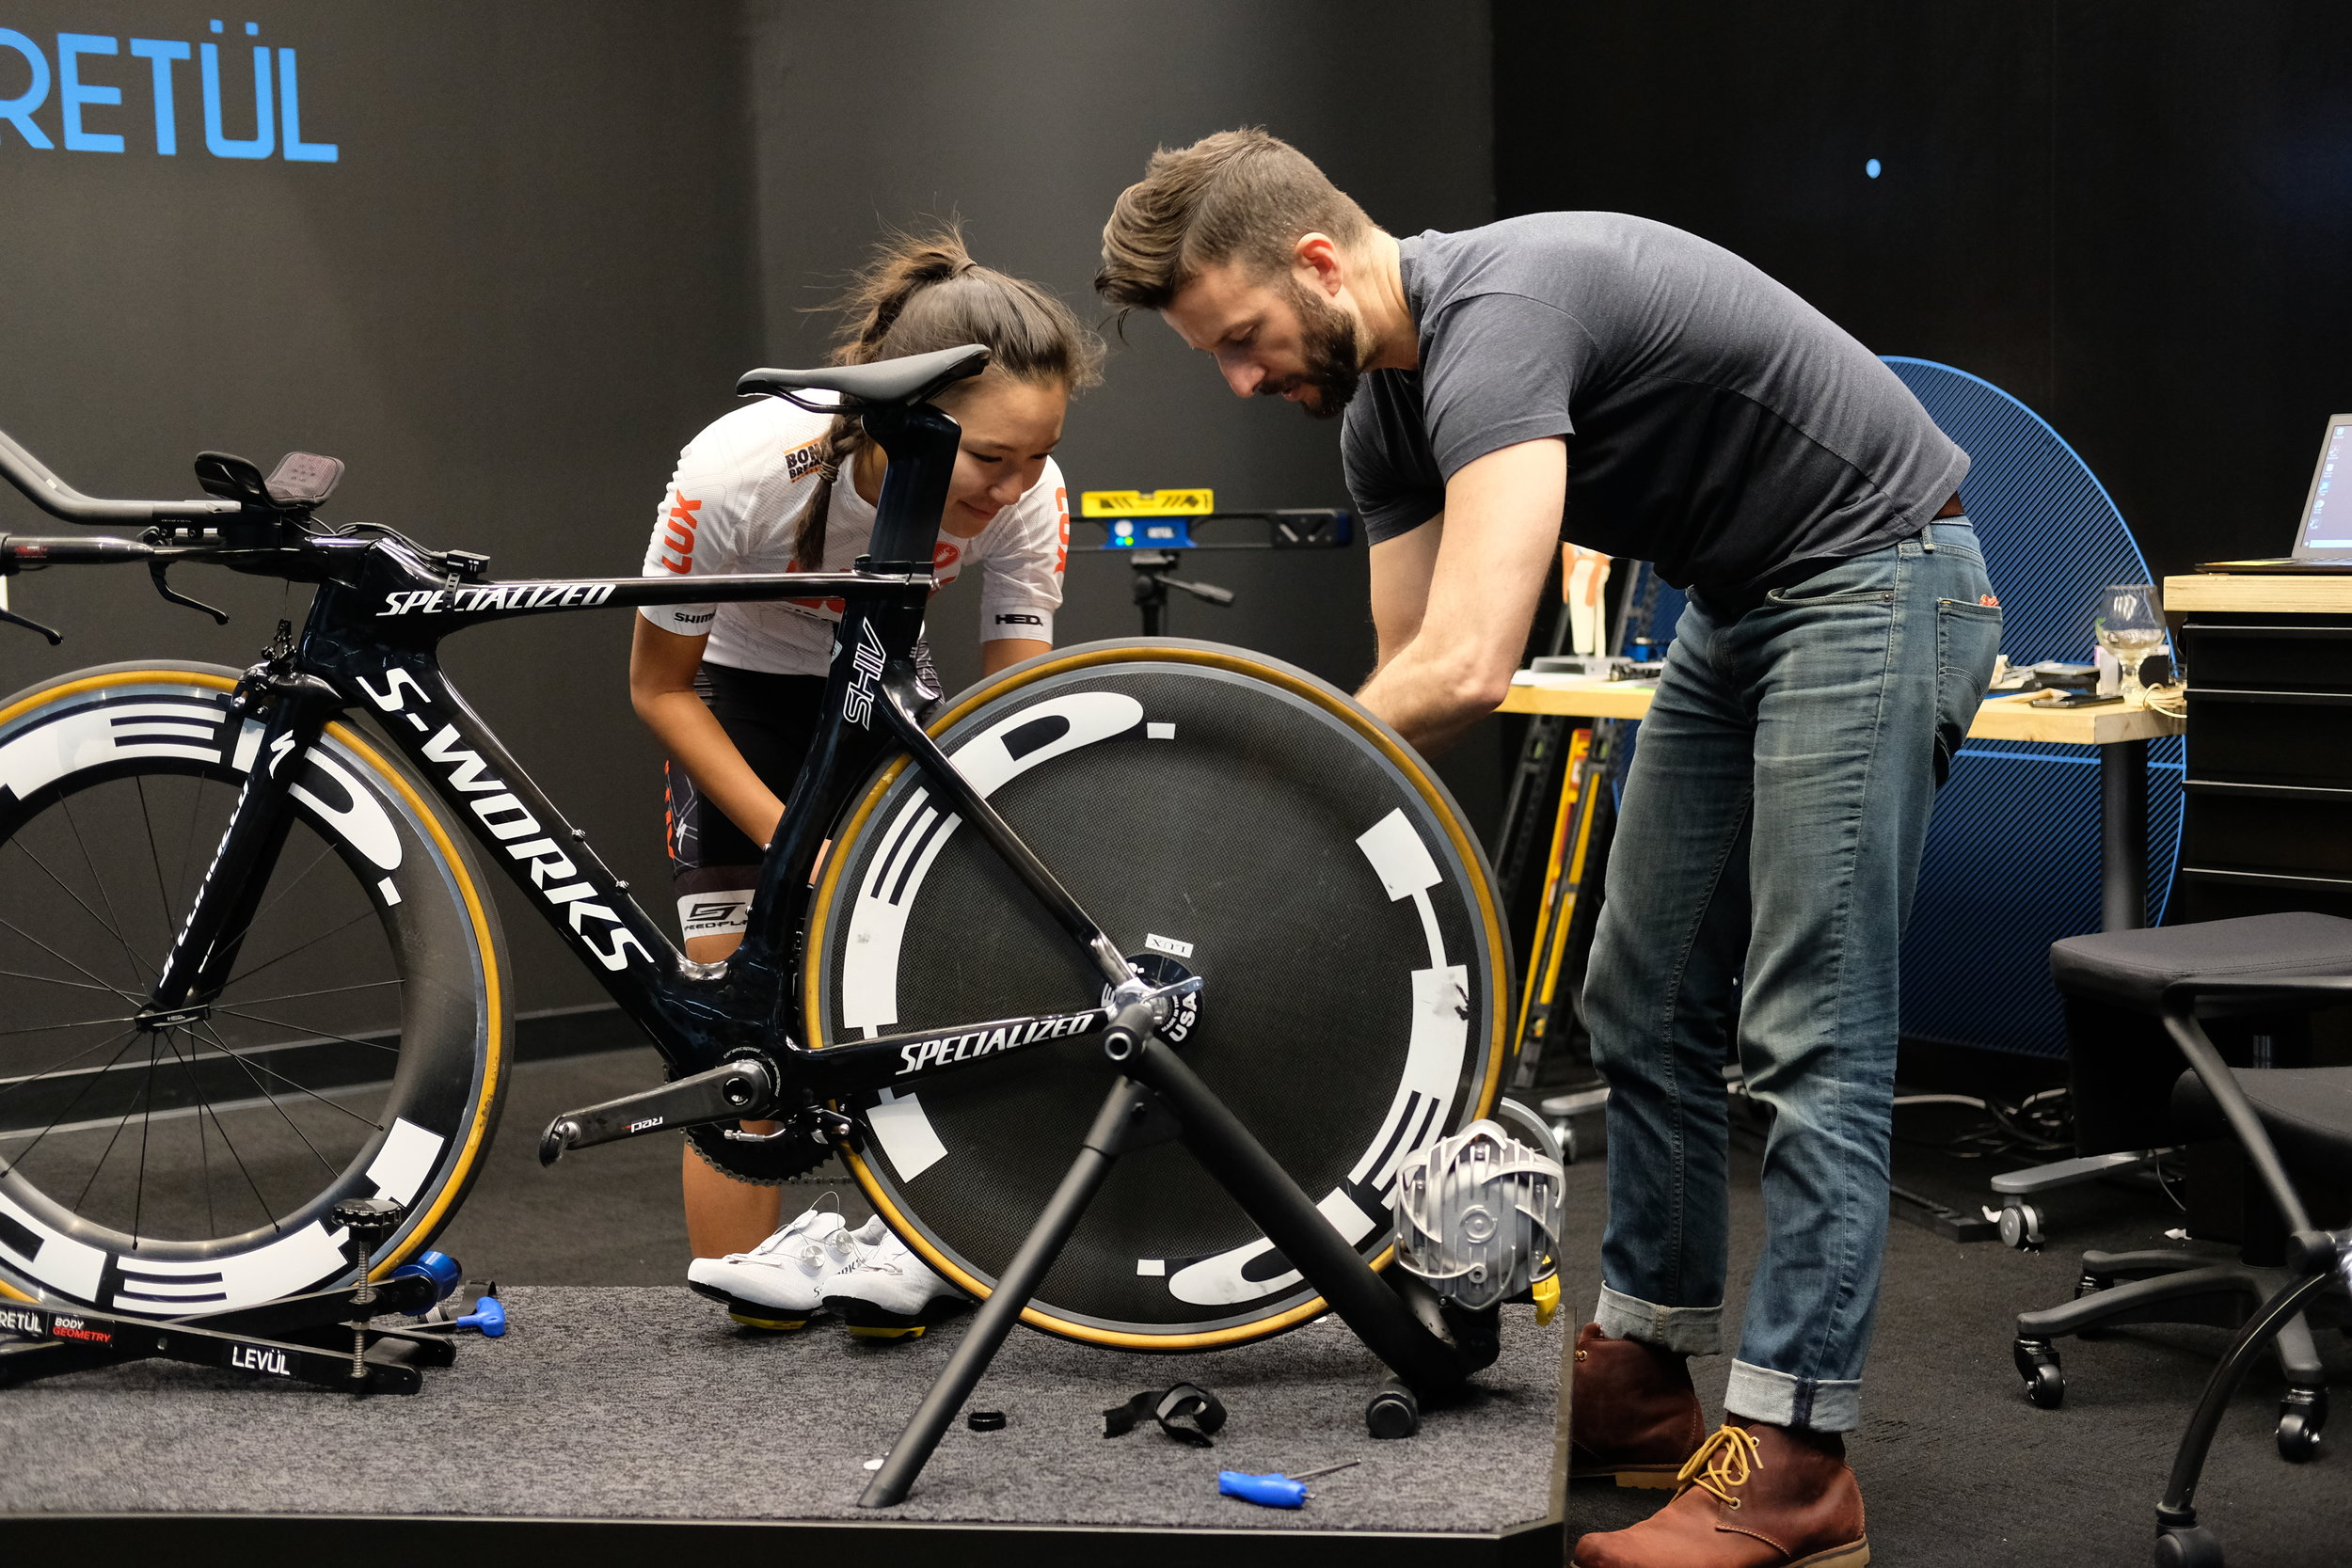 Retül Fit Specialist Aaron Post and Zoe Ta-Perez getting the bike properly set up.